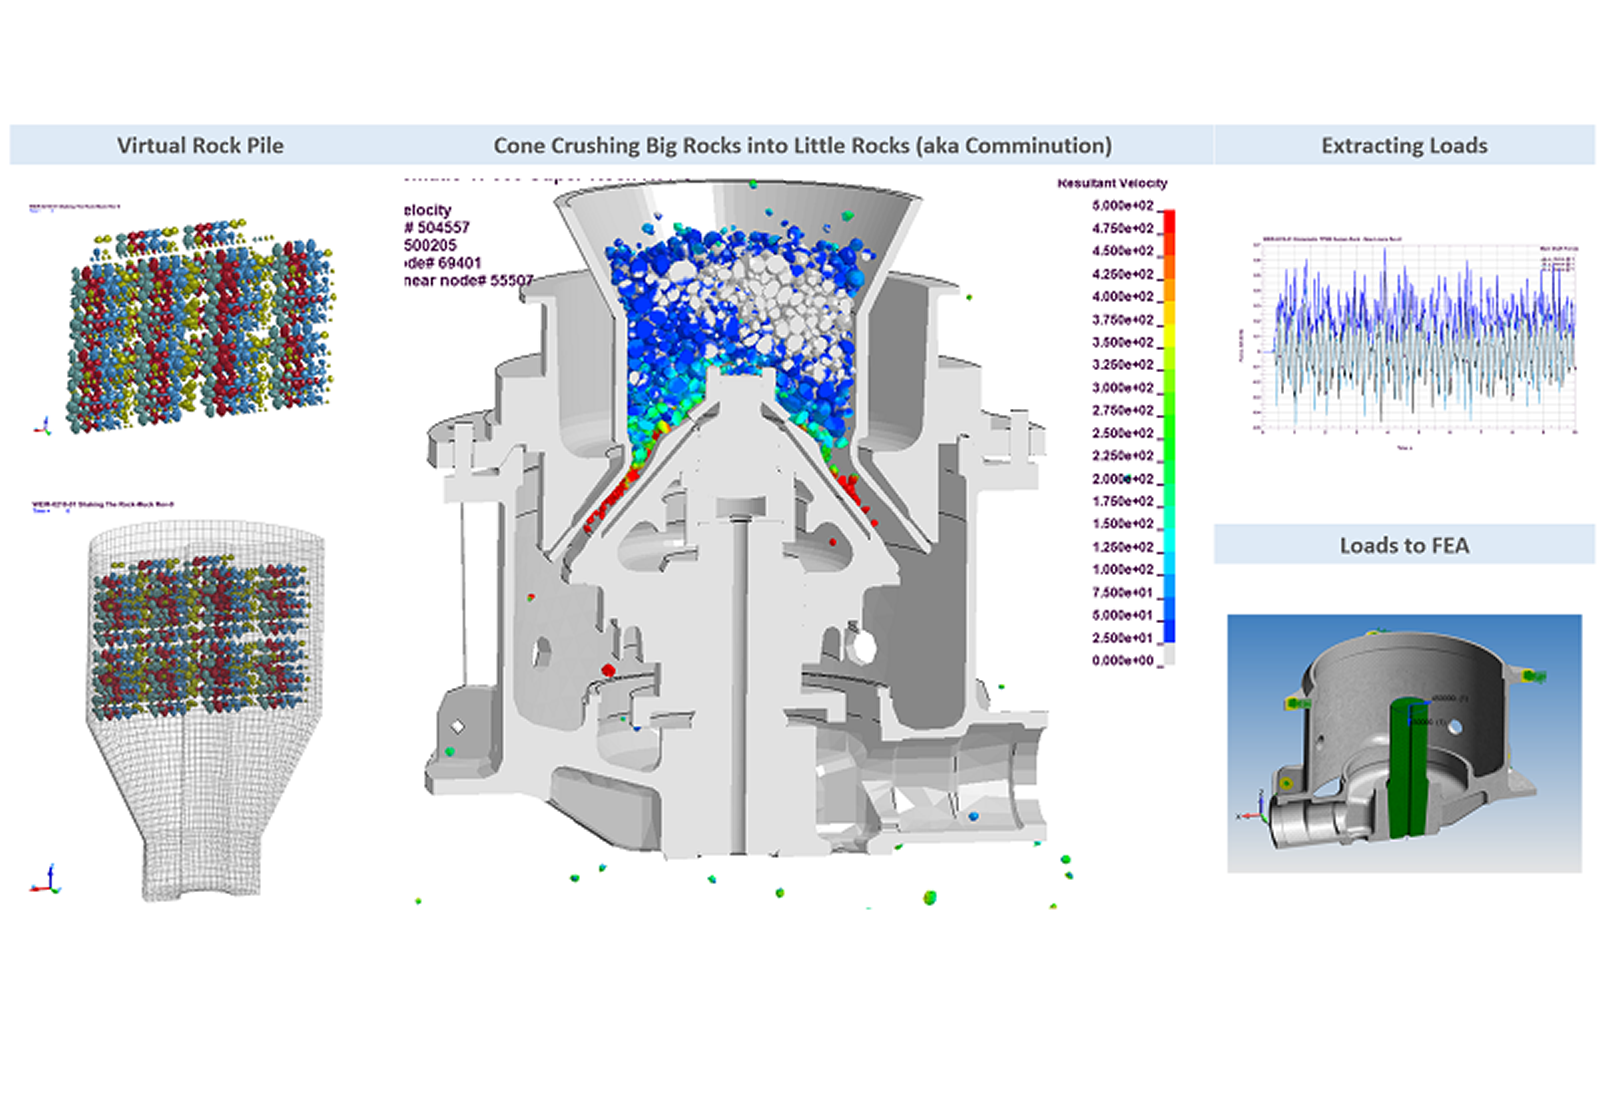 Nonlinear Transient FEA Analysis of High-Speed Cone Crusher - Rock Comminution - FEA Consulting Services - Predictive Engineering